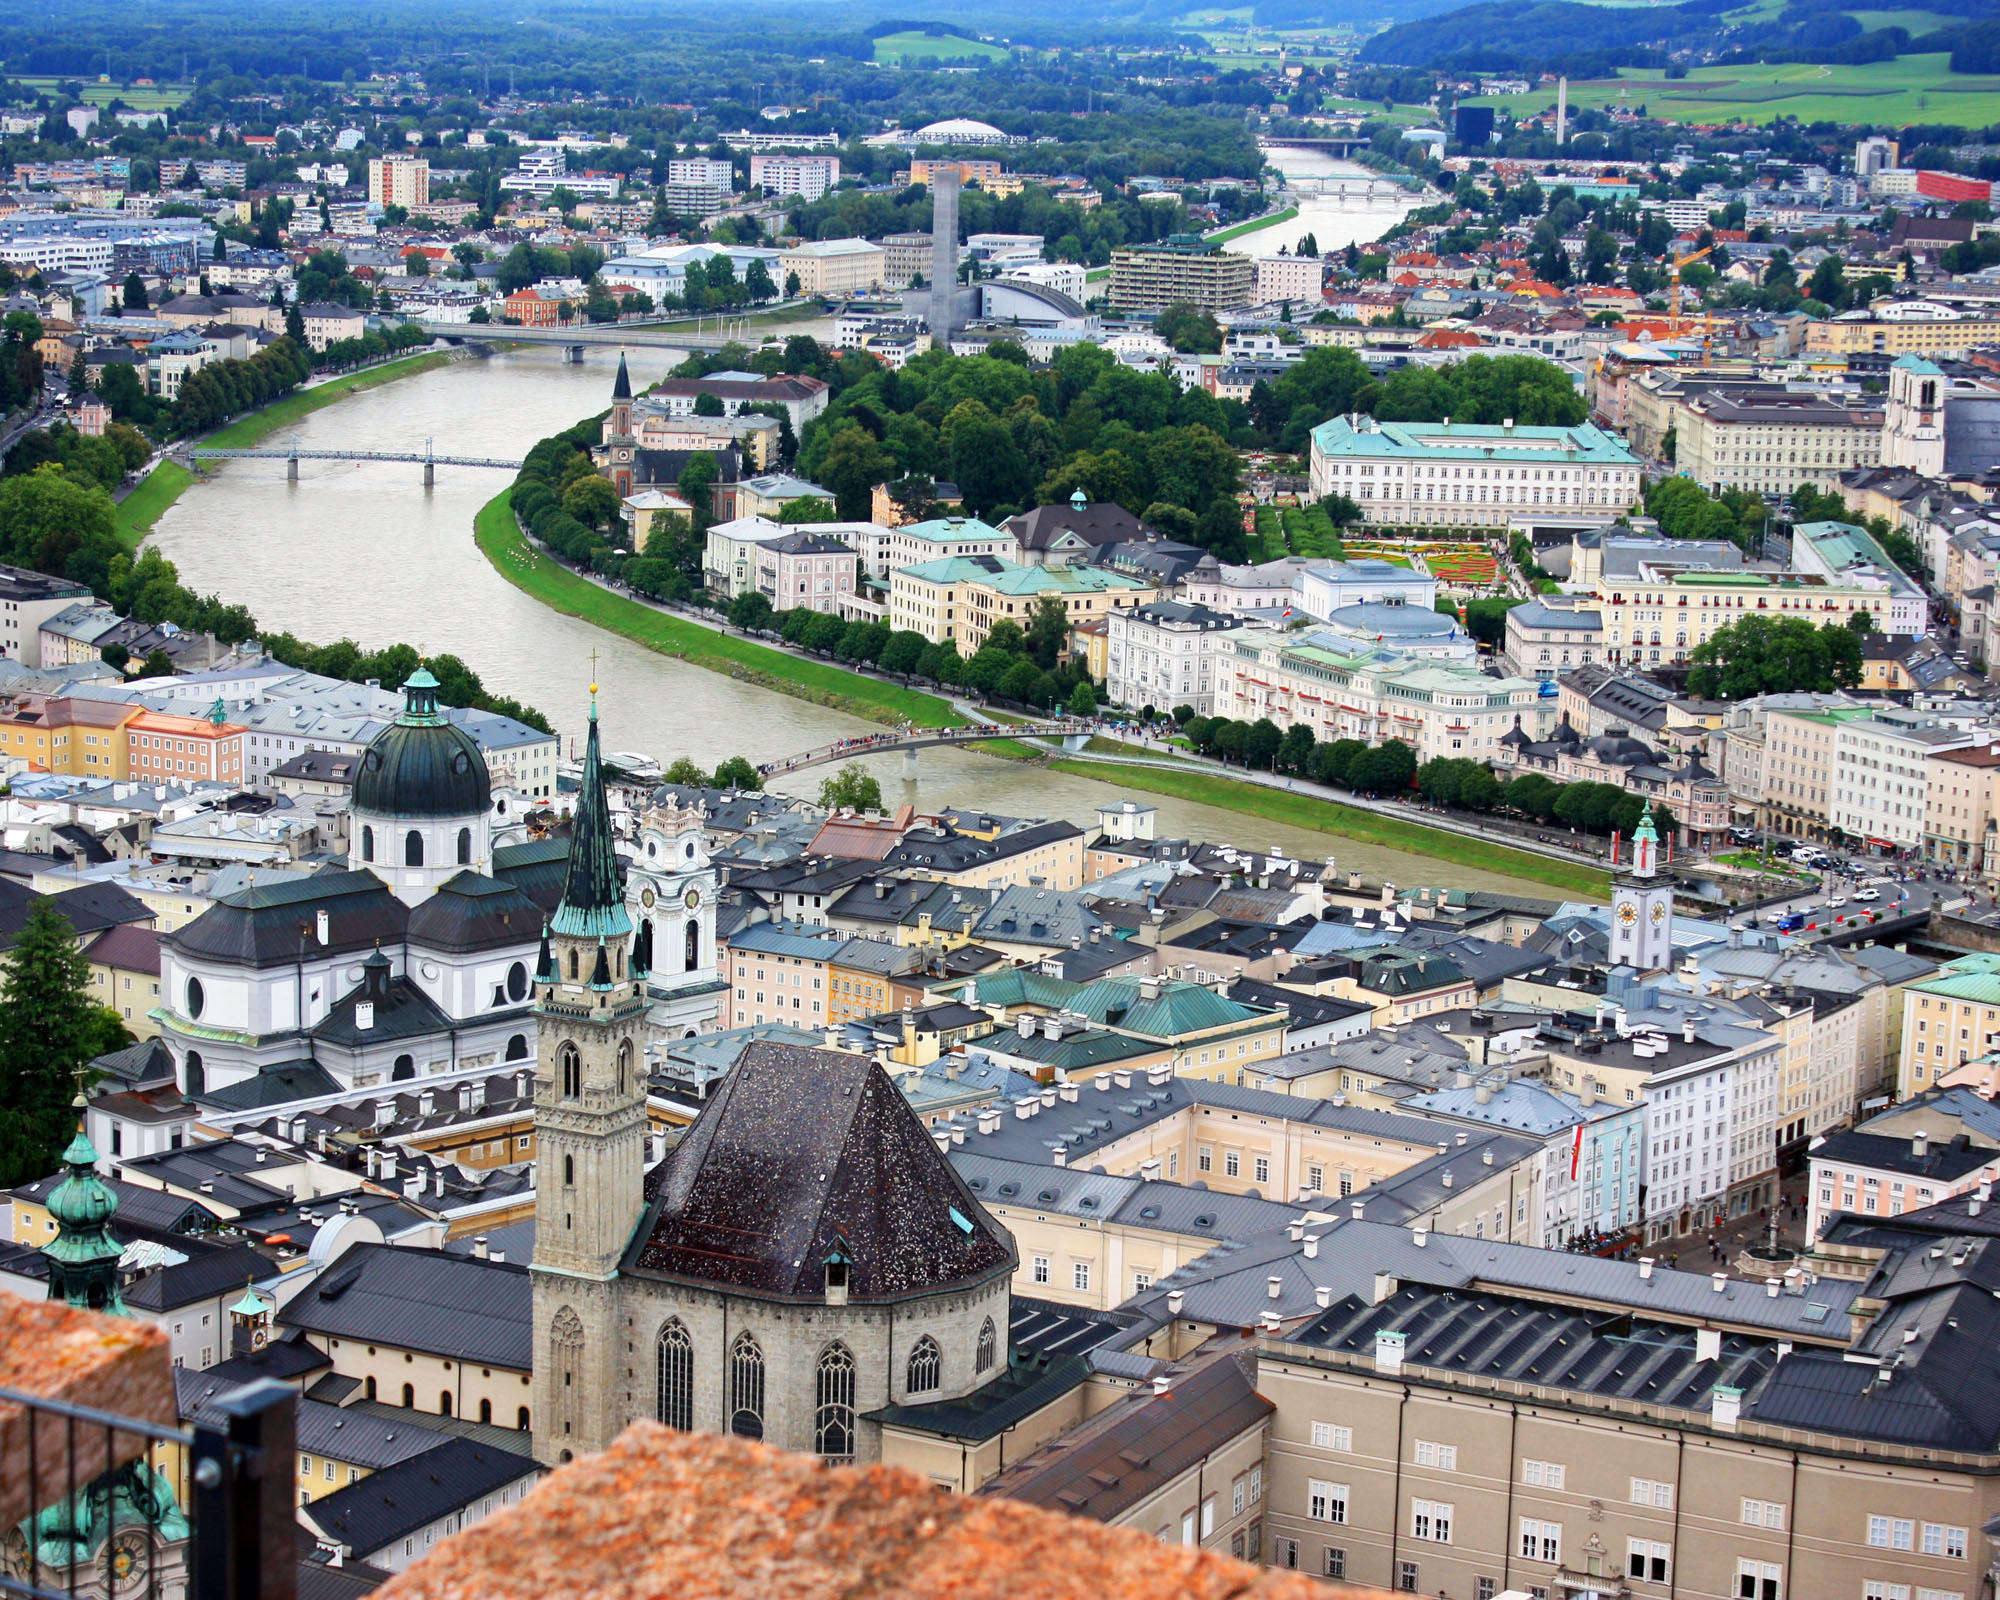 City of Salzburg viewed from the fortress tower.